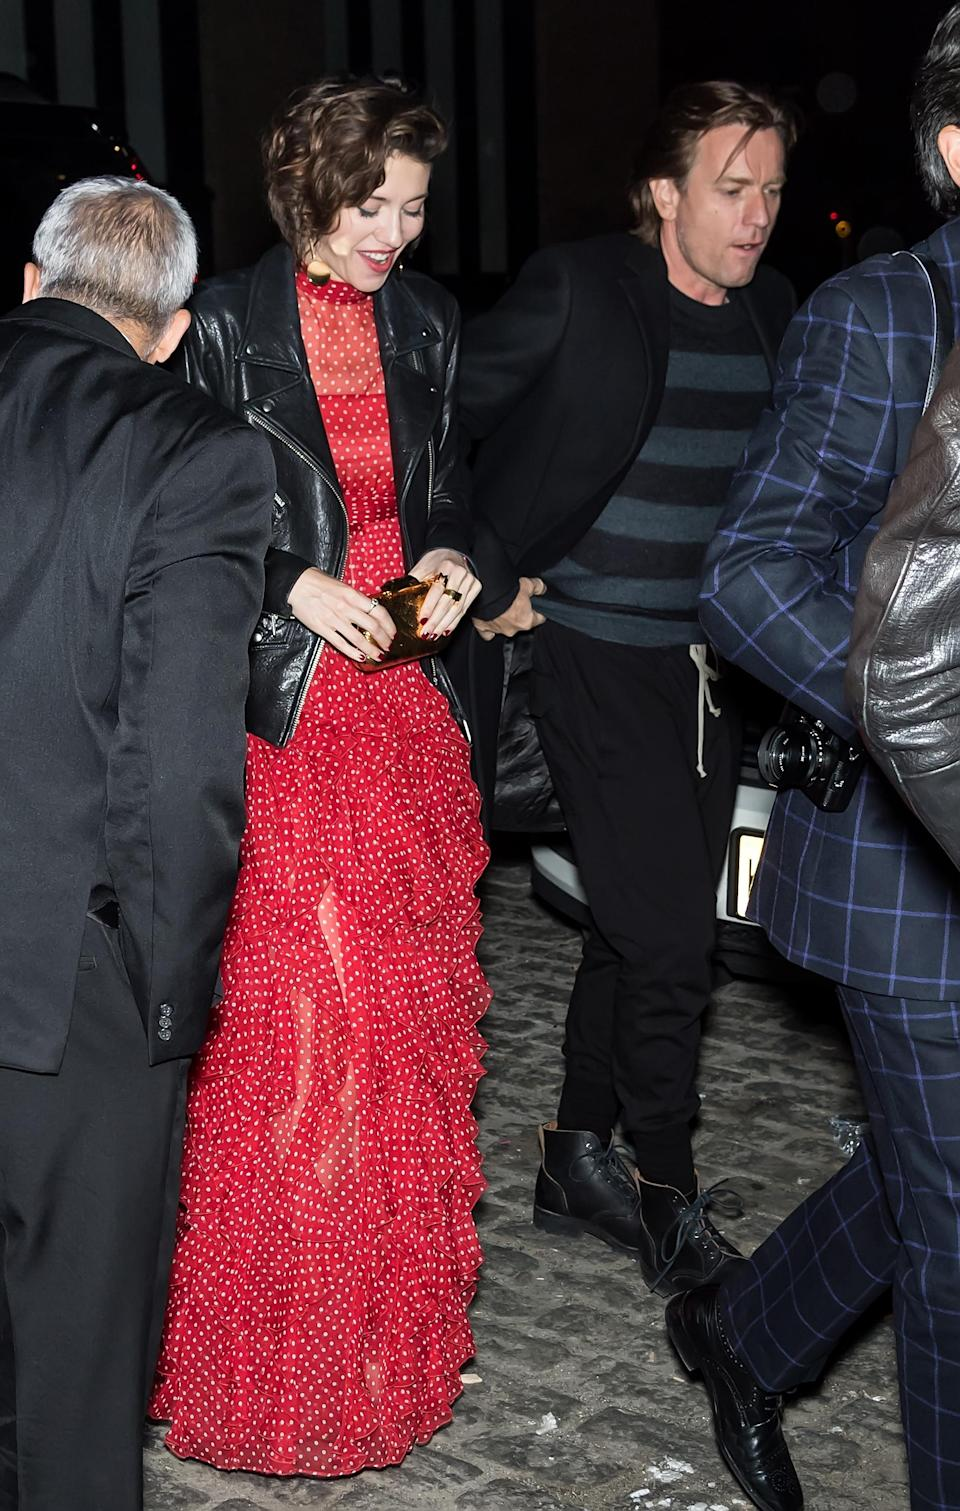 Ewan McGregor and Mary Elizabeth Winstead head to the after-party for her film <em>All About Nina</em> during the Tribeca Film Festival on April 22, 2018. (Photo: Gilbert Carrasquillo/GC Images)